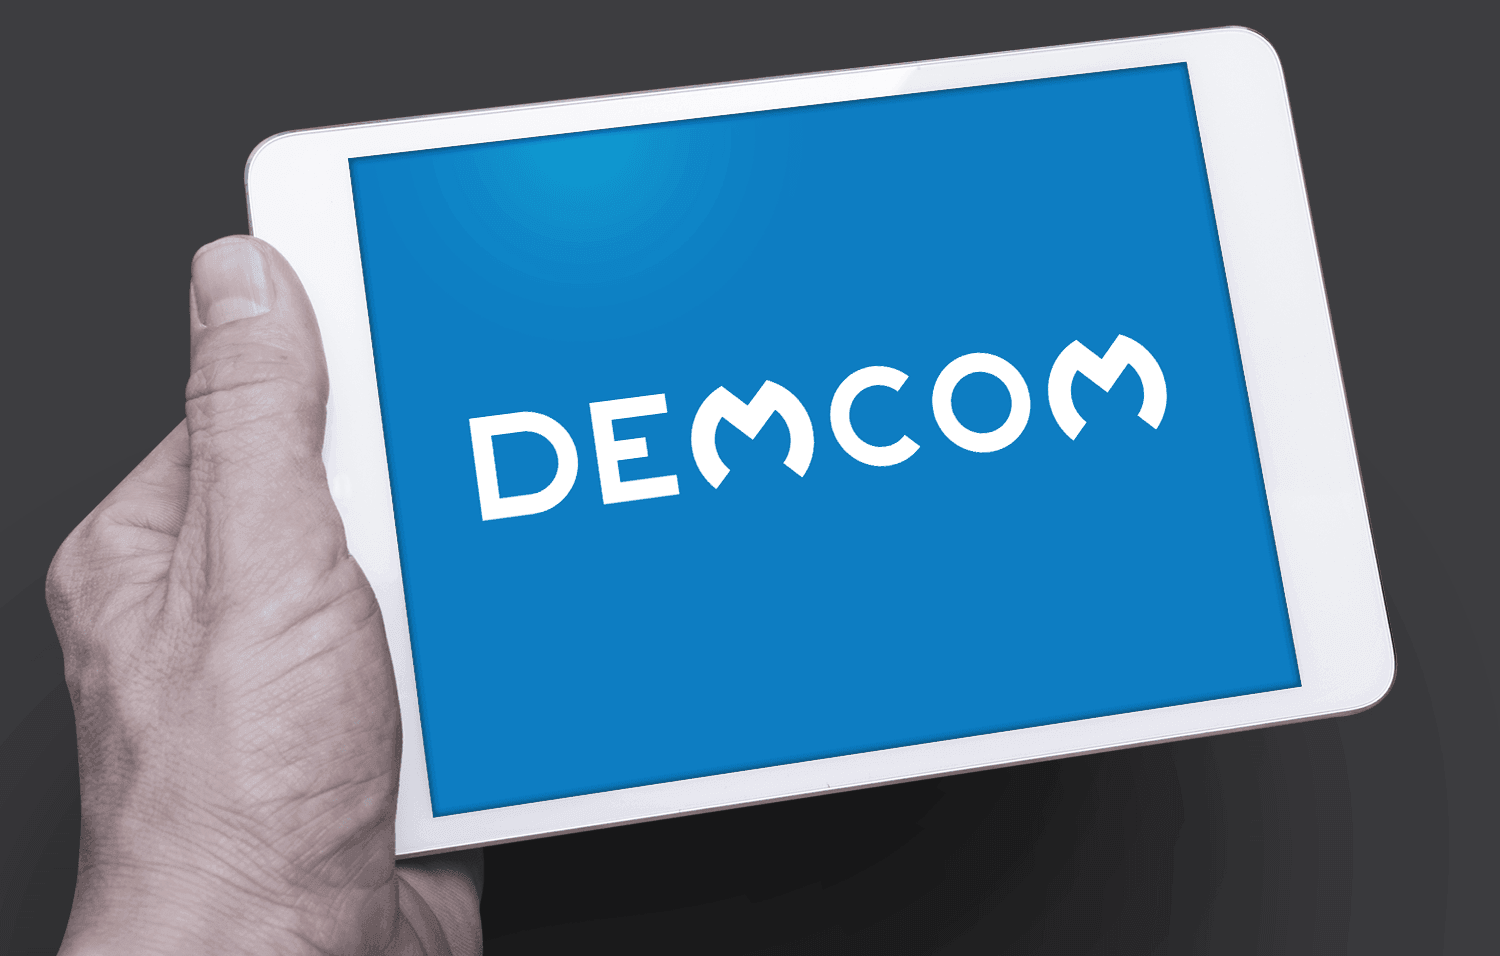 Demcom website